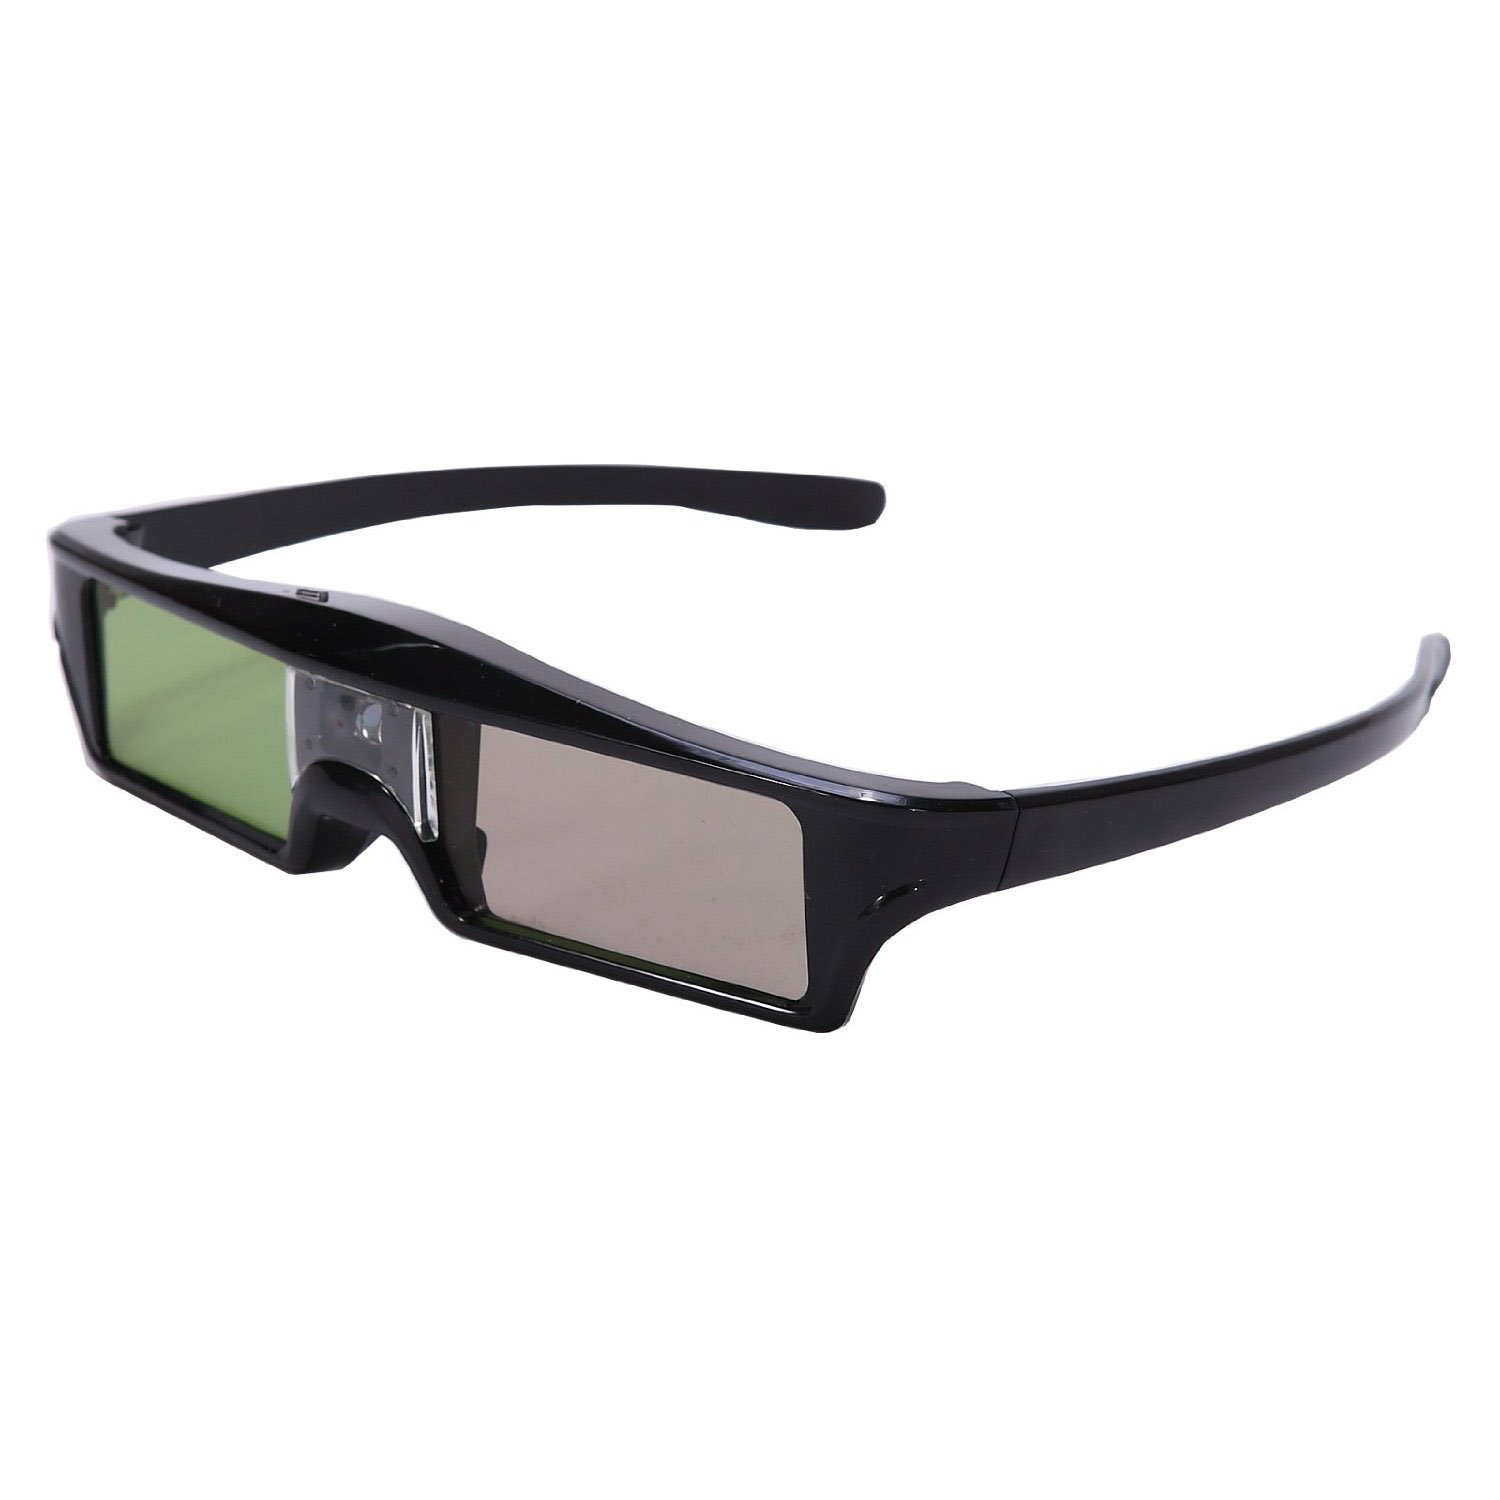 CAIWEI NEW 144 Hz Ultra-Clear HD 3D Active Rechargeable Shutter Glasses for DLP-Link 3D Projector/TV/HDTV